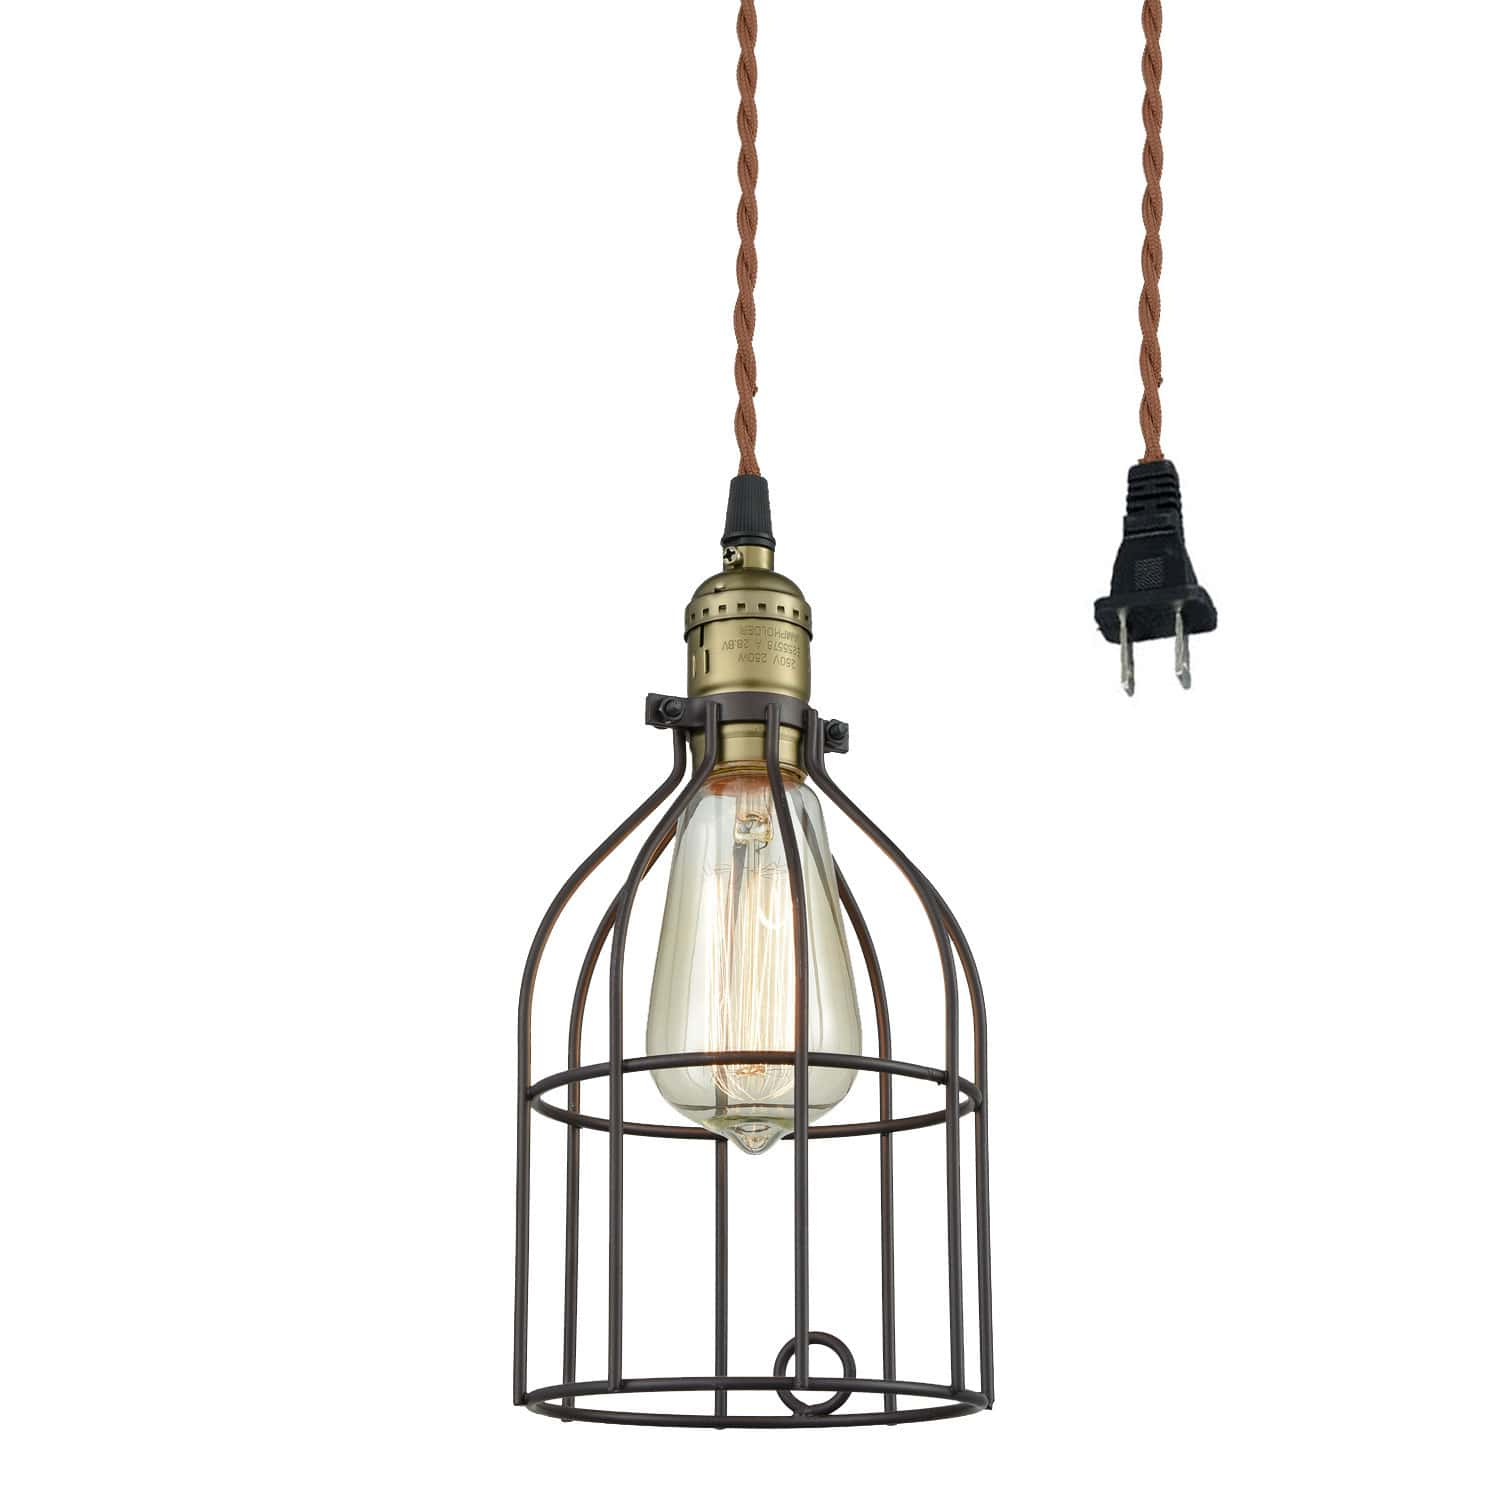 Industrial Plug-In Pendant Light Bronze Finish with Bird Cage Shade